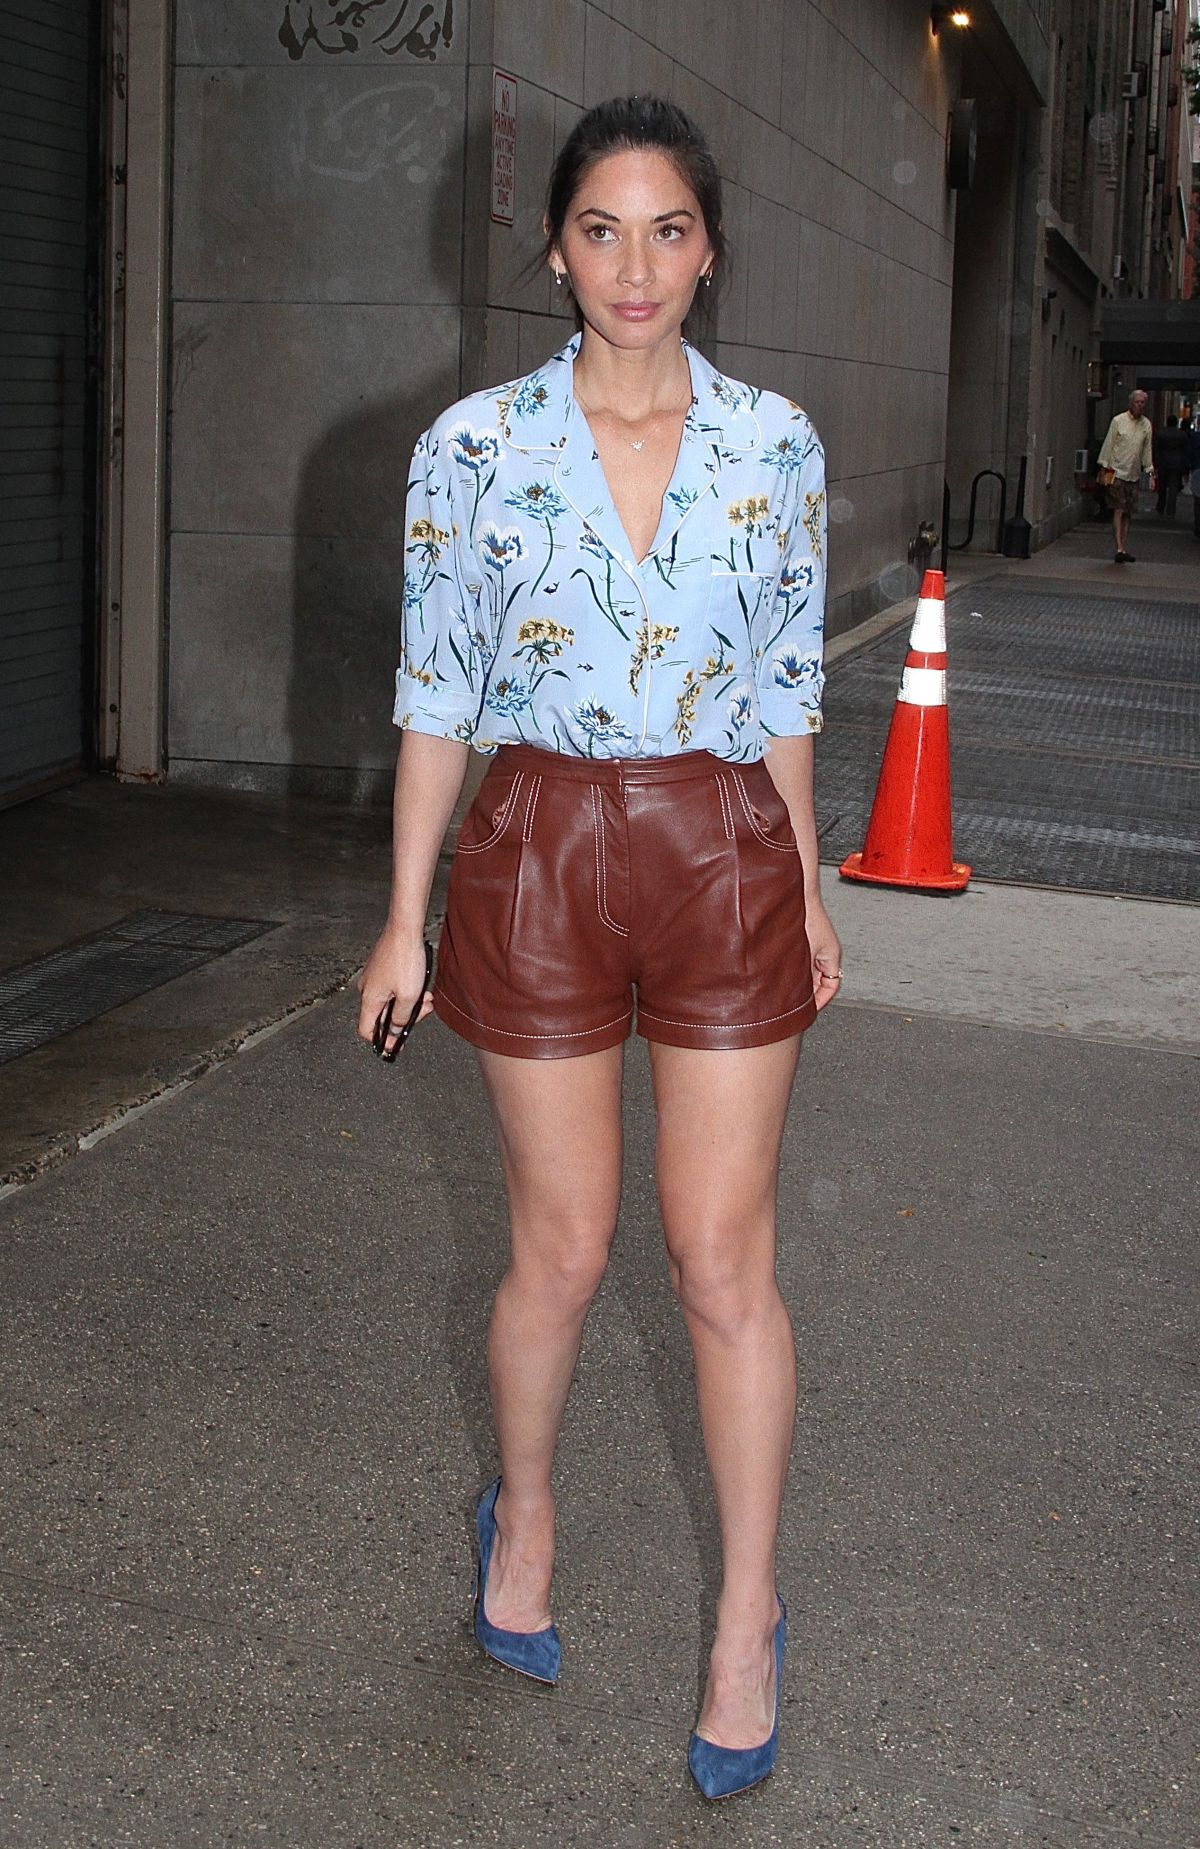 OLIVIA MUNN at The Chew in New York 09/18/2017